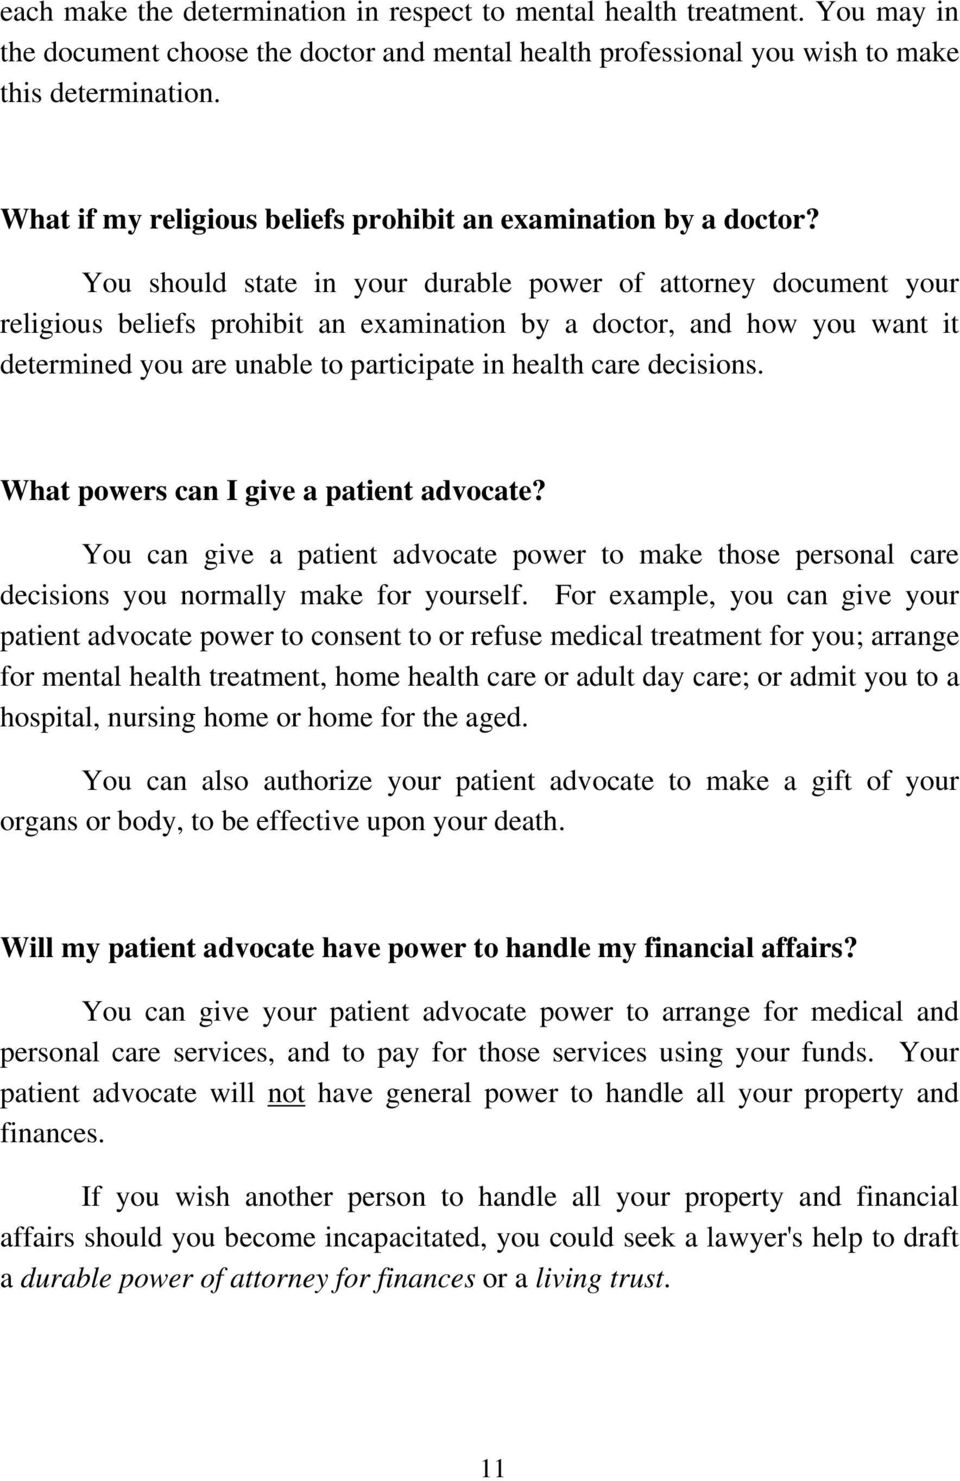 You should state in your durable power of attorney document your religious beliefs prohibit an examination by a doctor, and how you want it determined you are unable to participate in health care